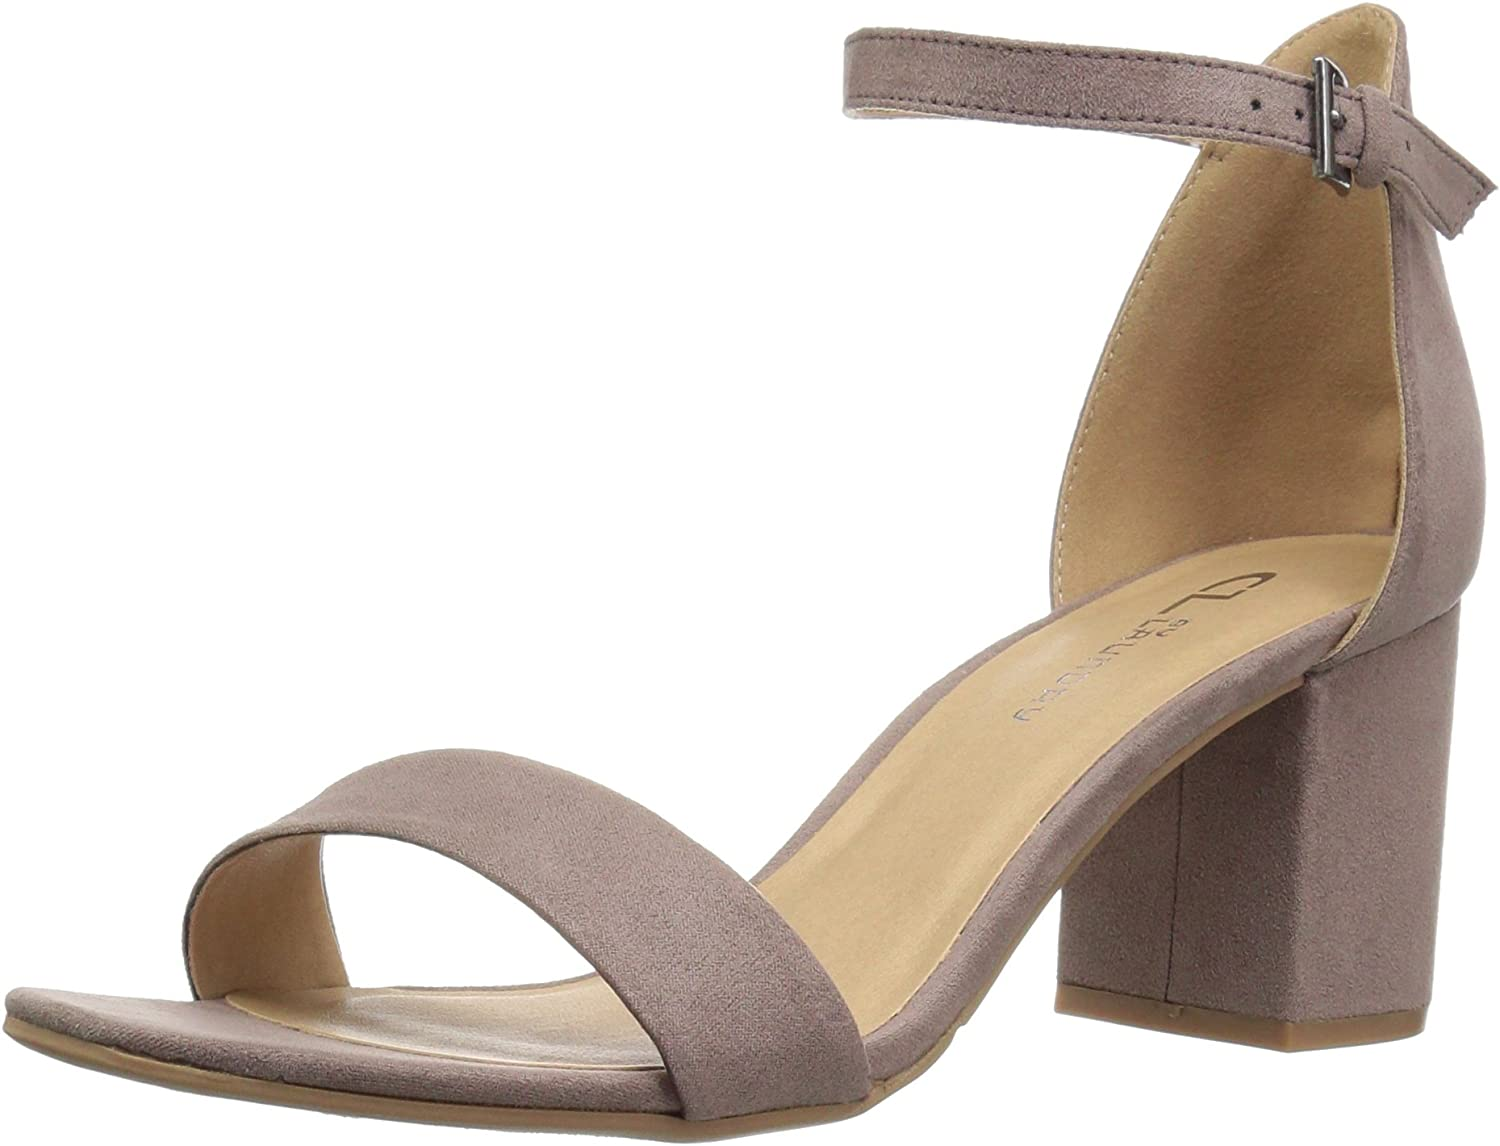 CL by Chinese Laundry Women's Jessie Block Heel Dress Sandal